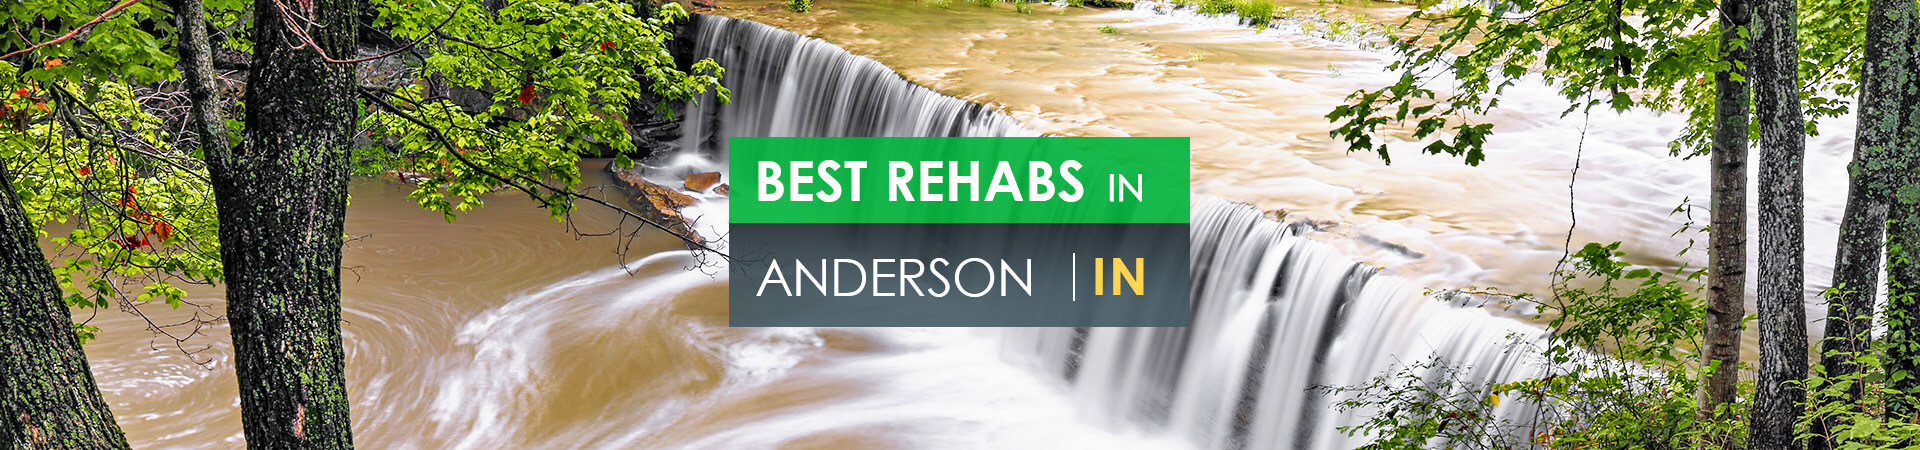 Best rehabs in Anderson, IN